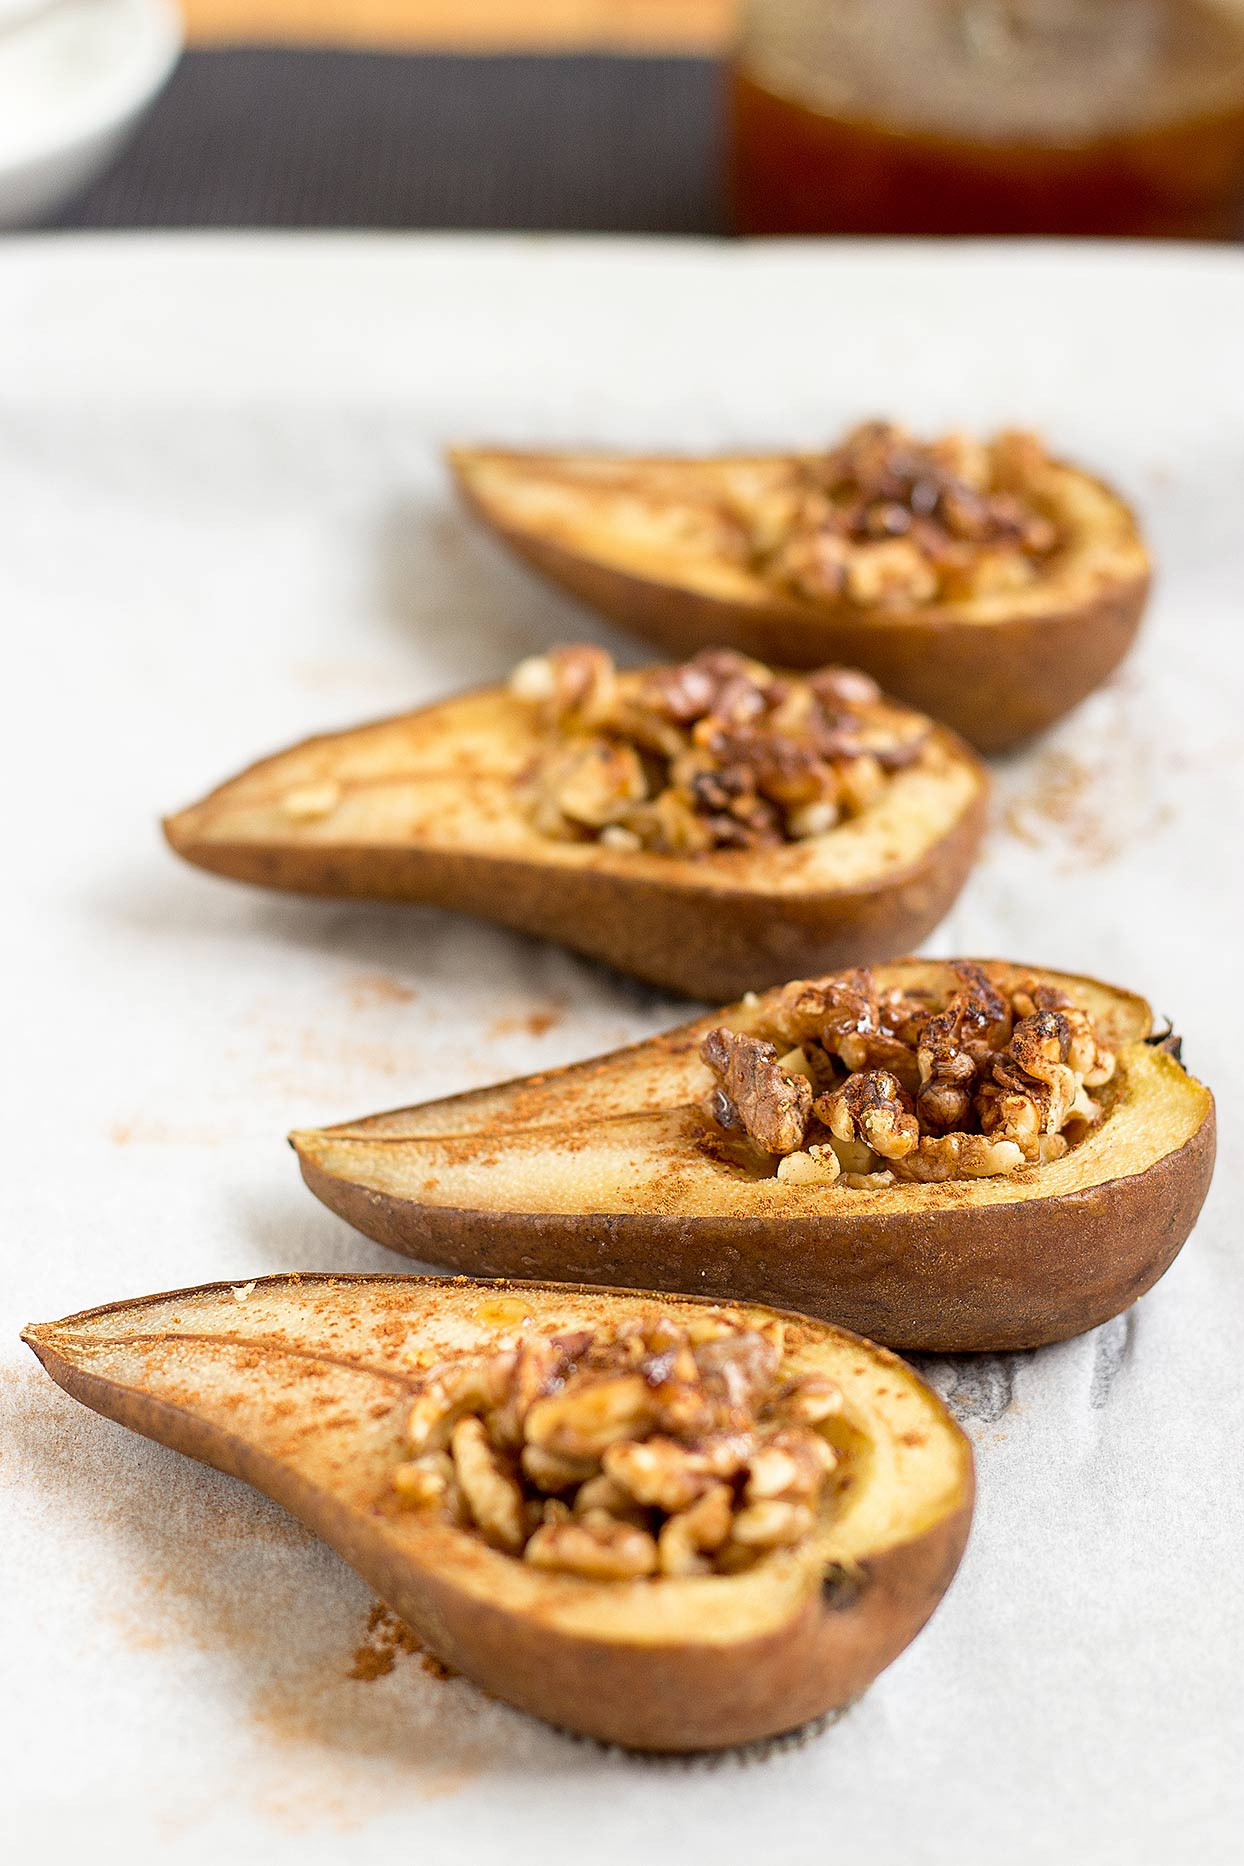 The cinnamon baked pears are cooked and on the table